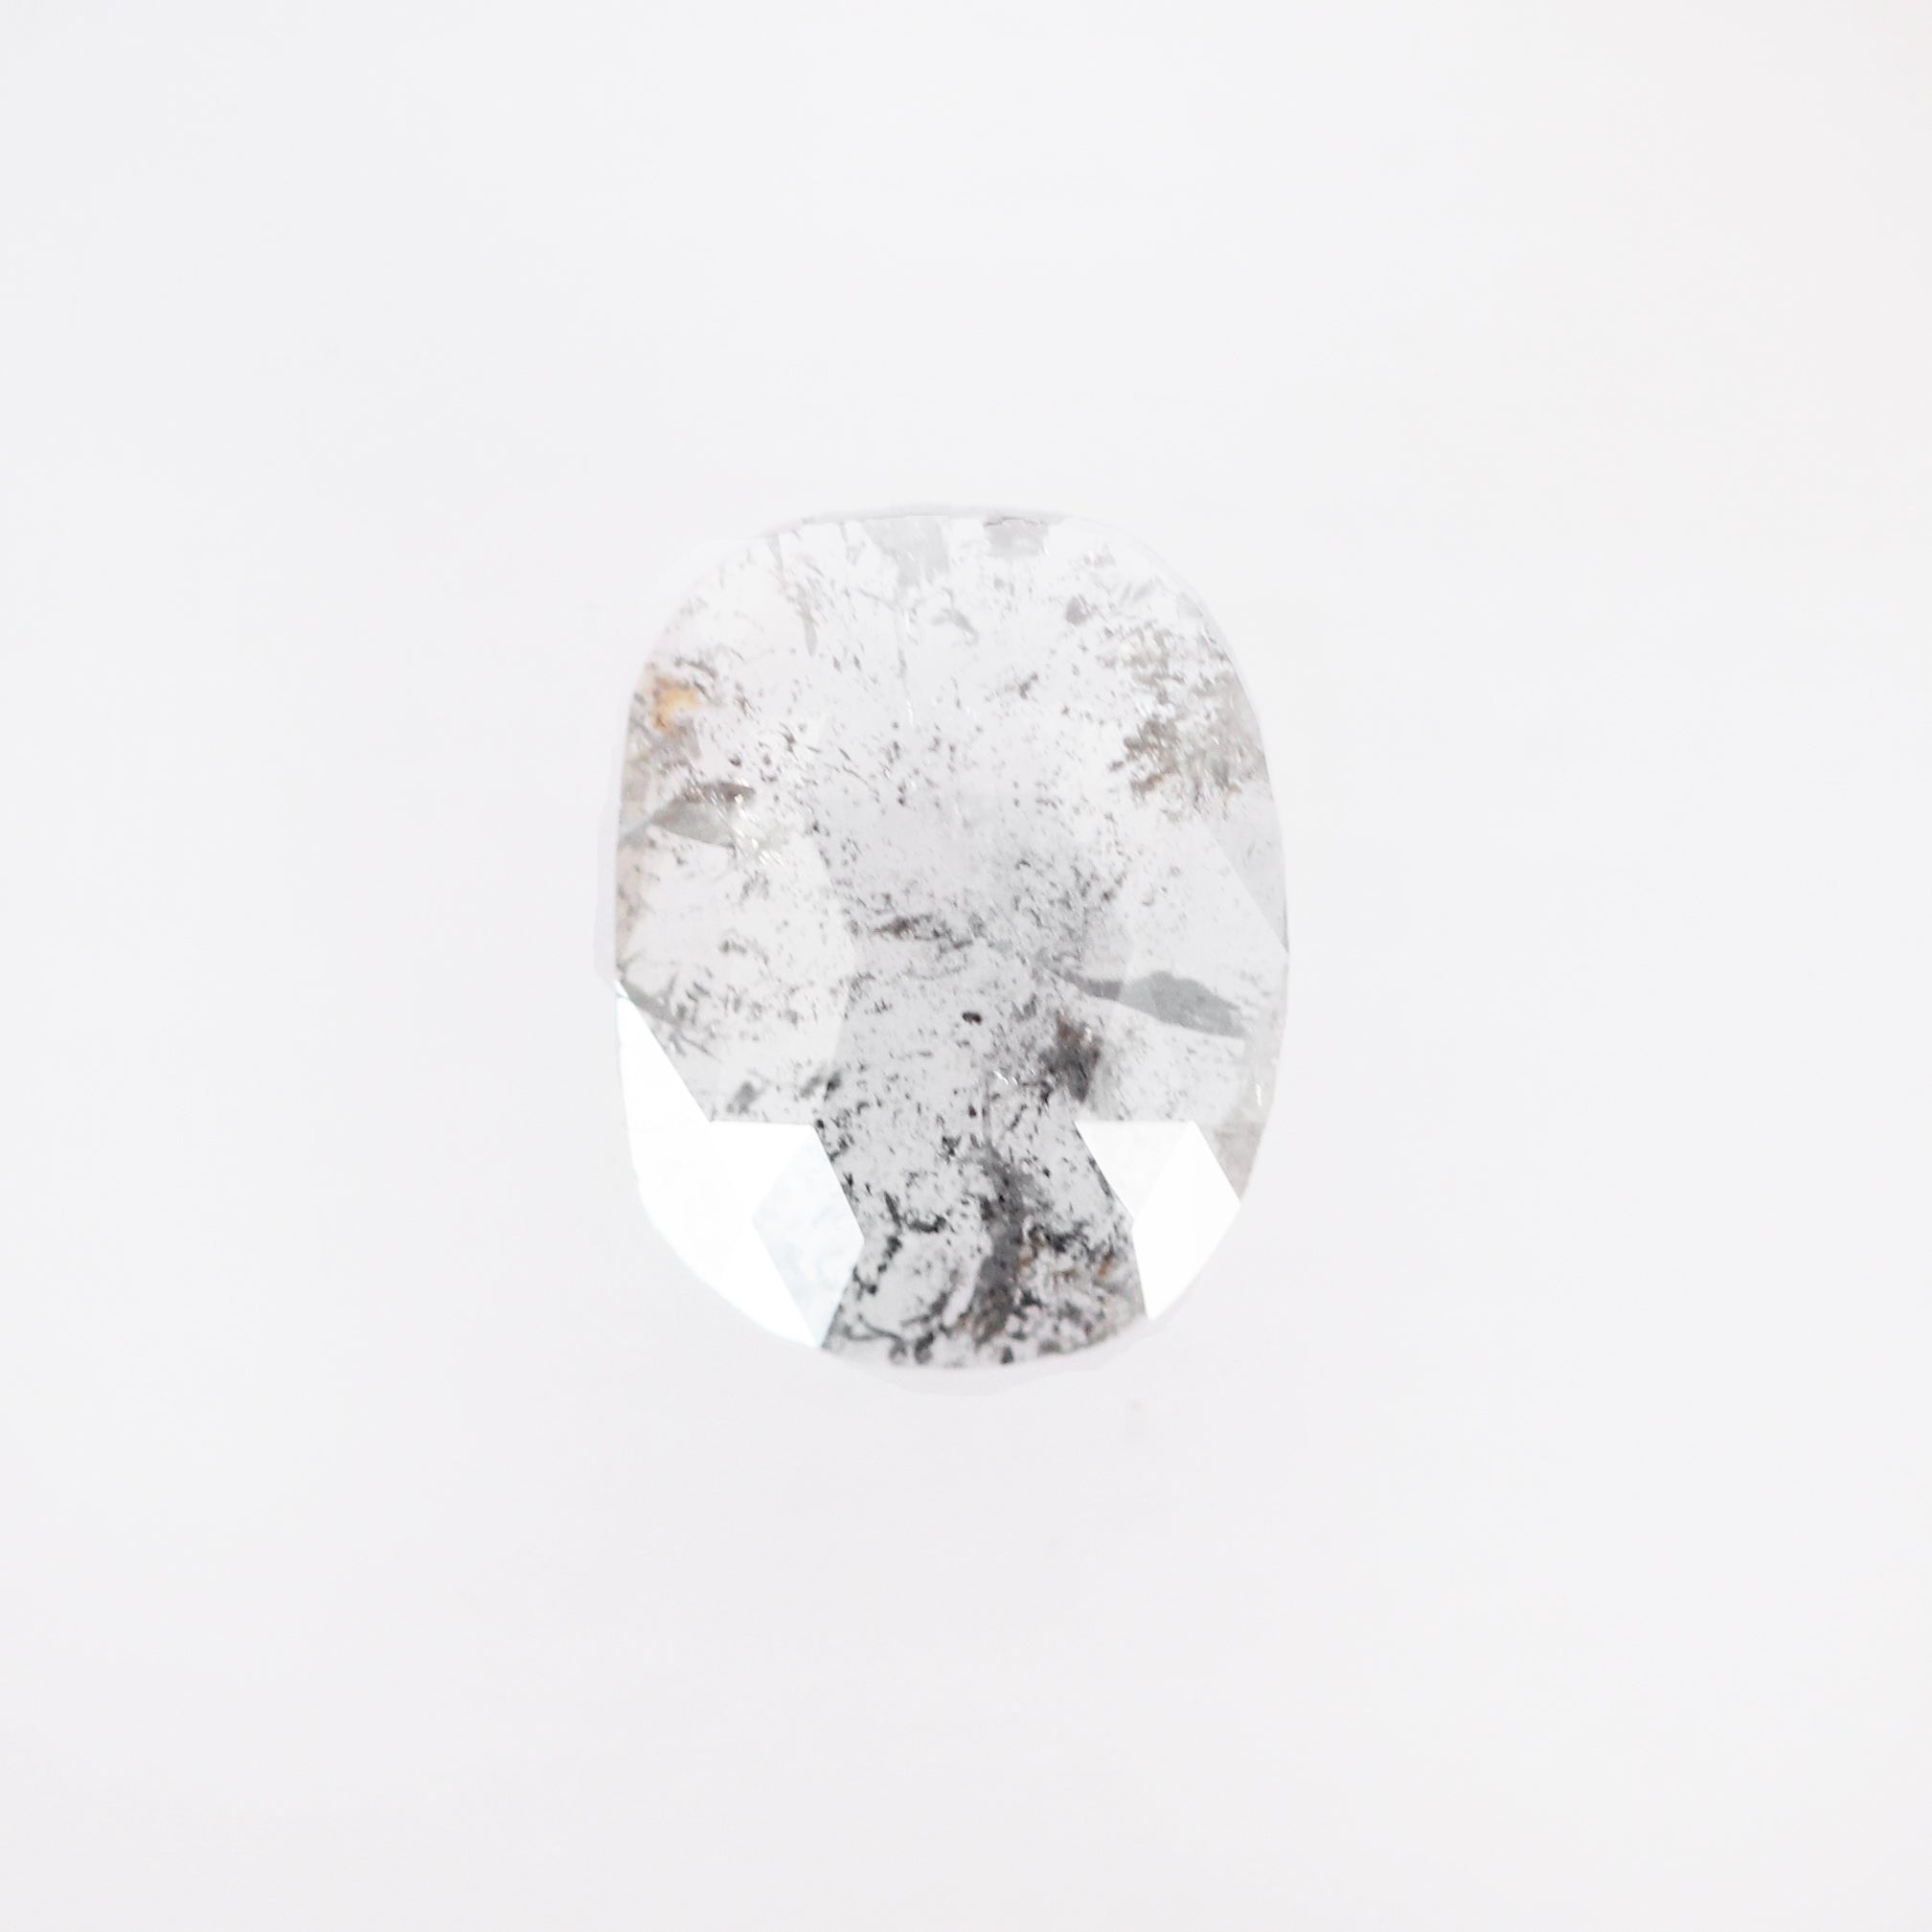 .77 Carat Oval Celestial Diamond® for Custom Work - Inventory Code RO77 - Celestial Diamonds ® by Midwinter Co.